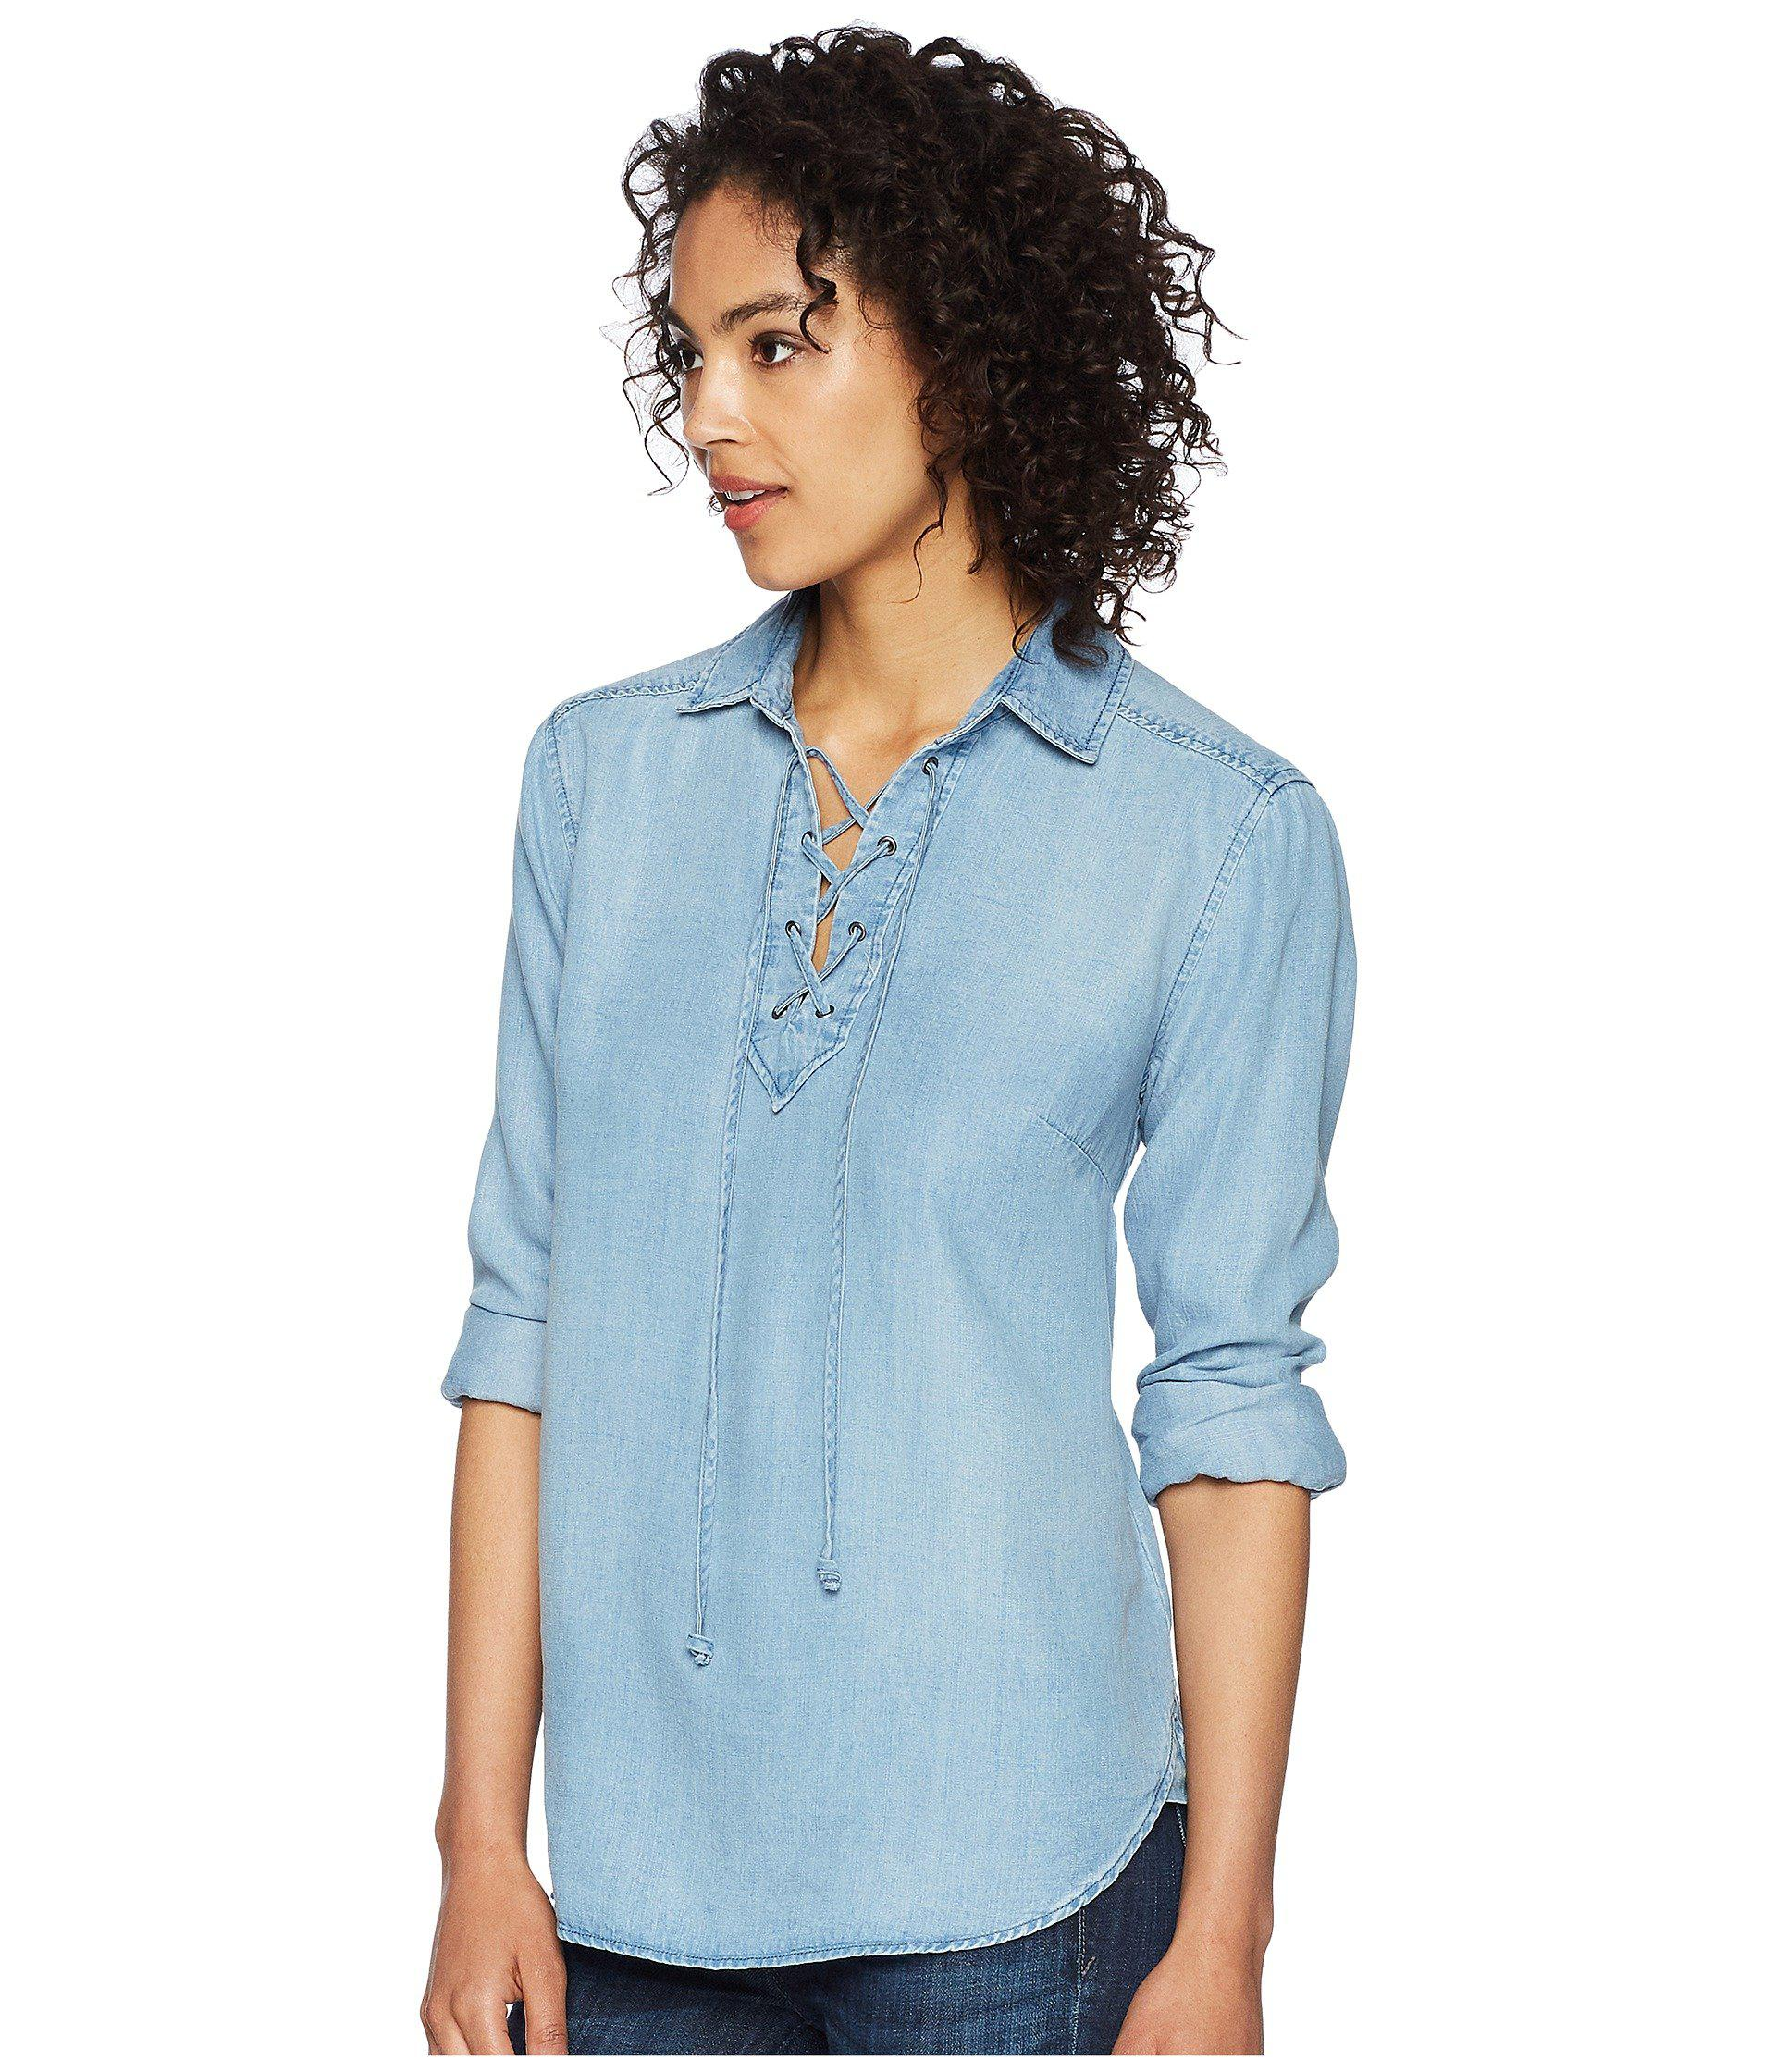 8eab458f84e Lyst - Liverpool Jeans Company Lace-up Front Shirt in Blue - Save 51%